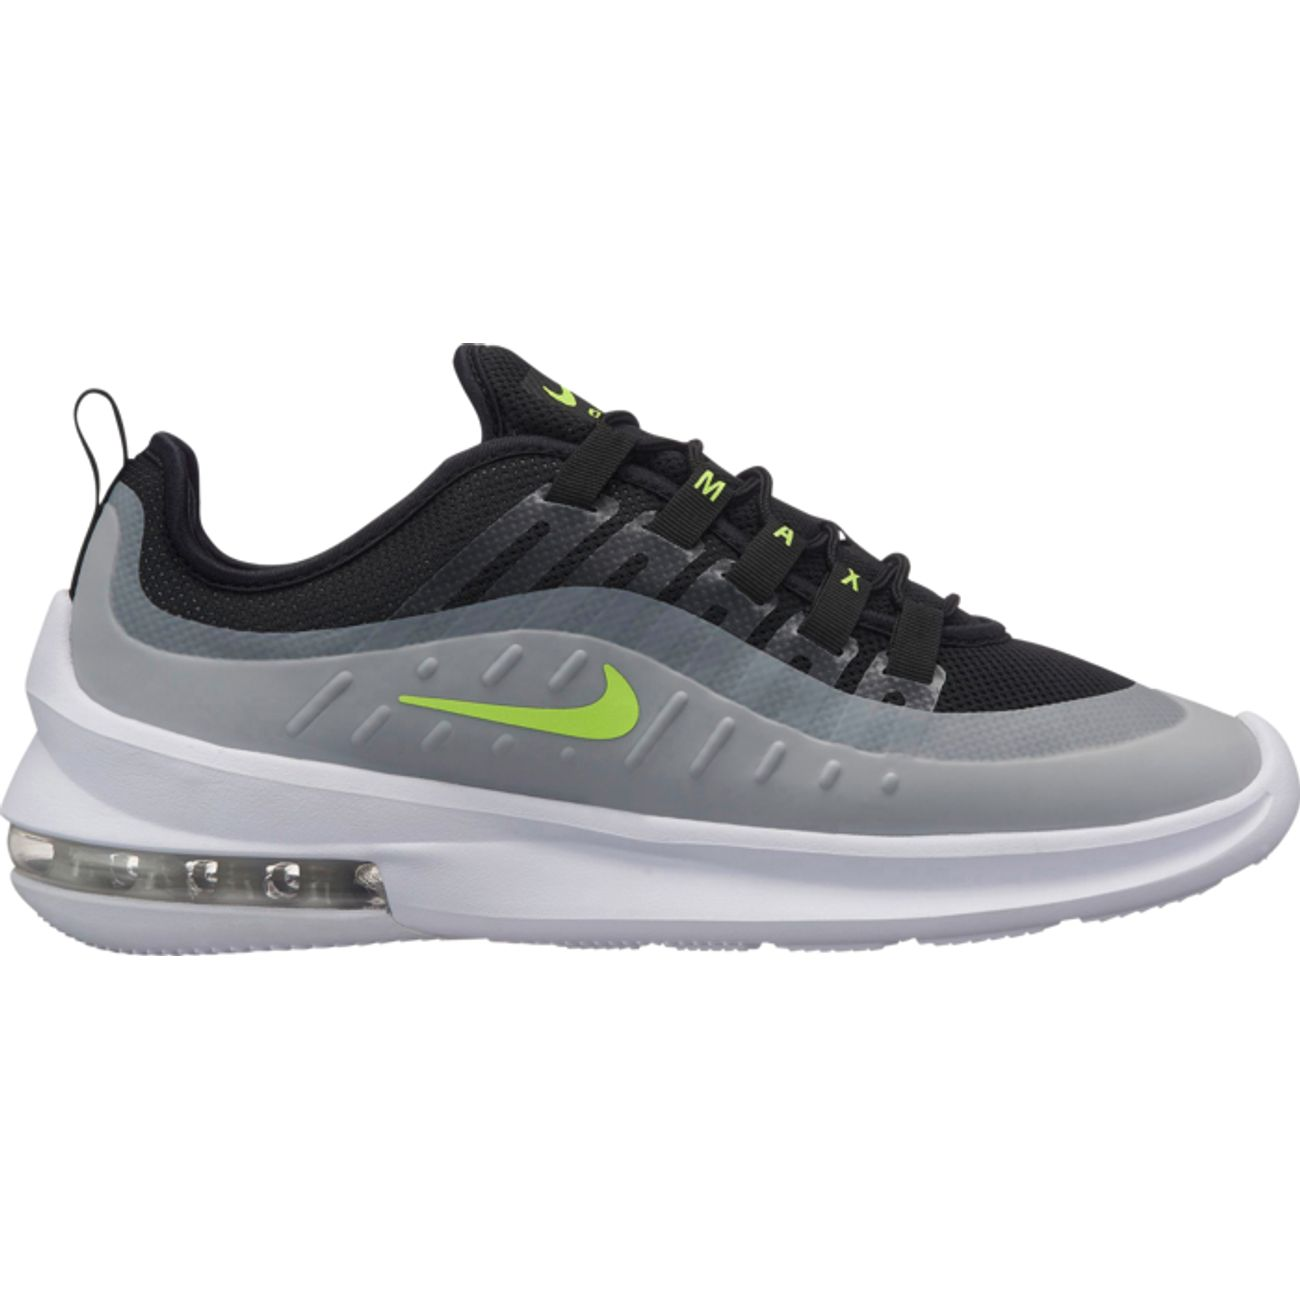 new arrival a13a5 580d8 CHAUSSURES BASSES running homme NIKE AIR MAX AXIS